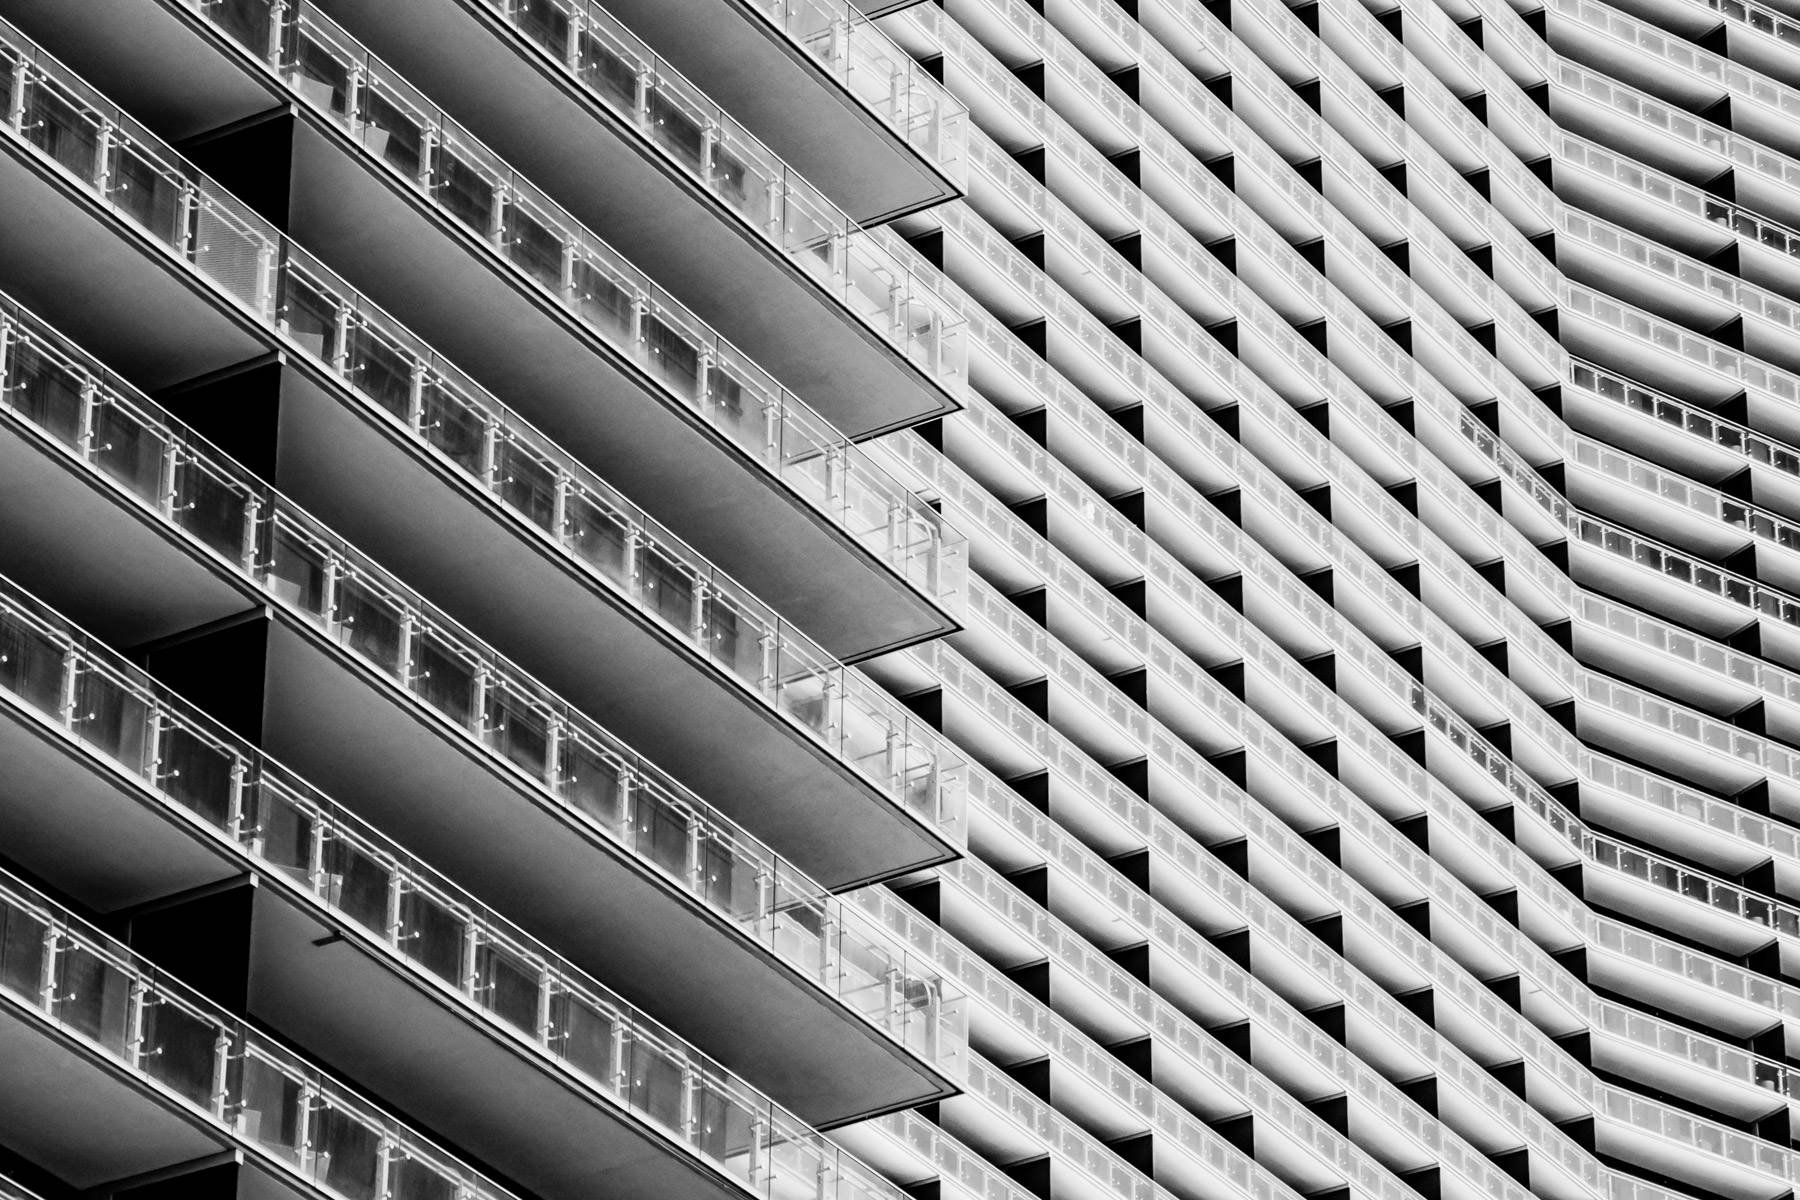 Exterior abstracted detail of The Cosmopolitan of Las Vegas' balconies and windows.